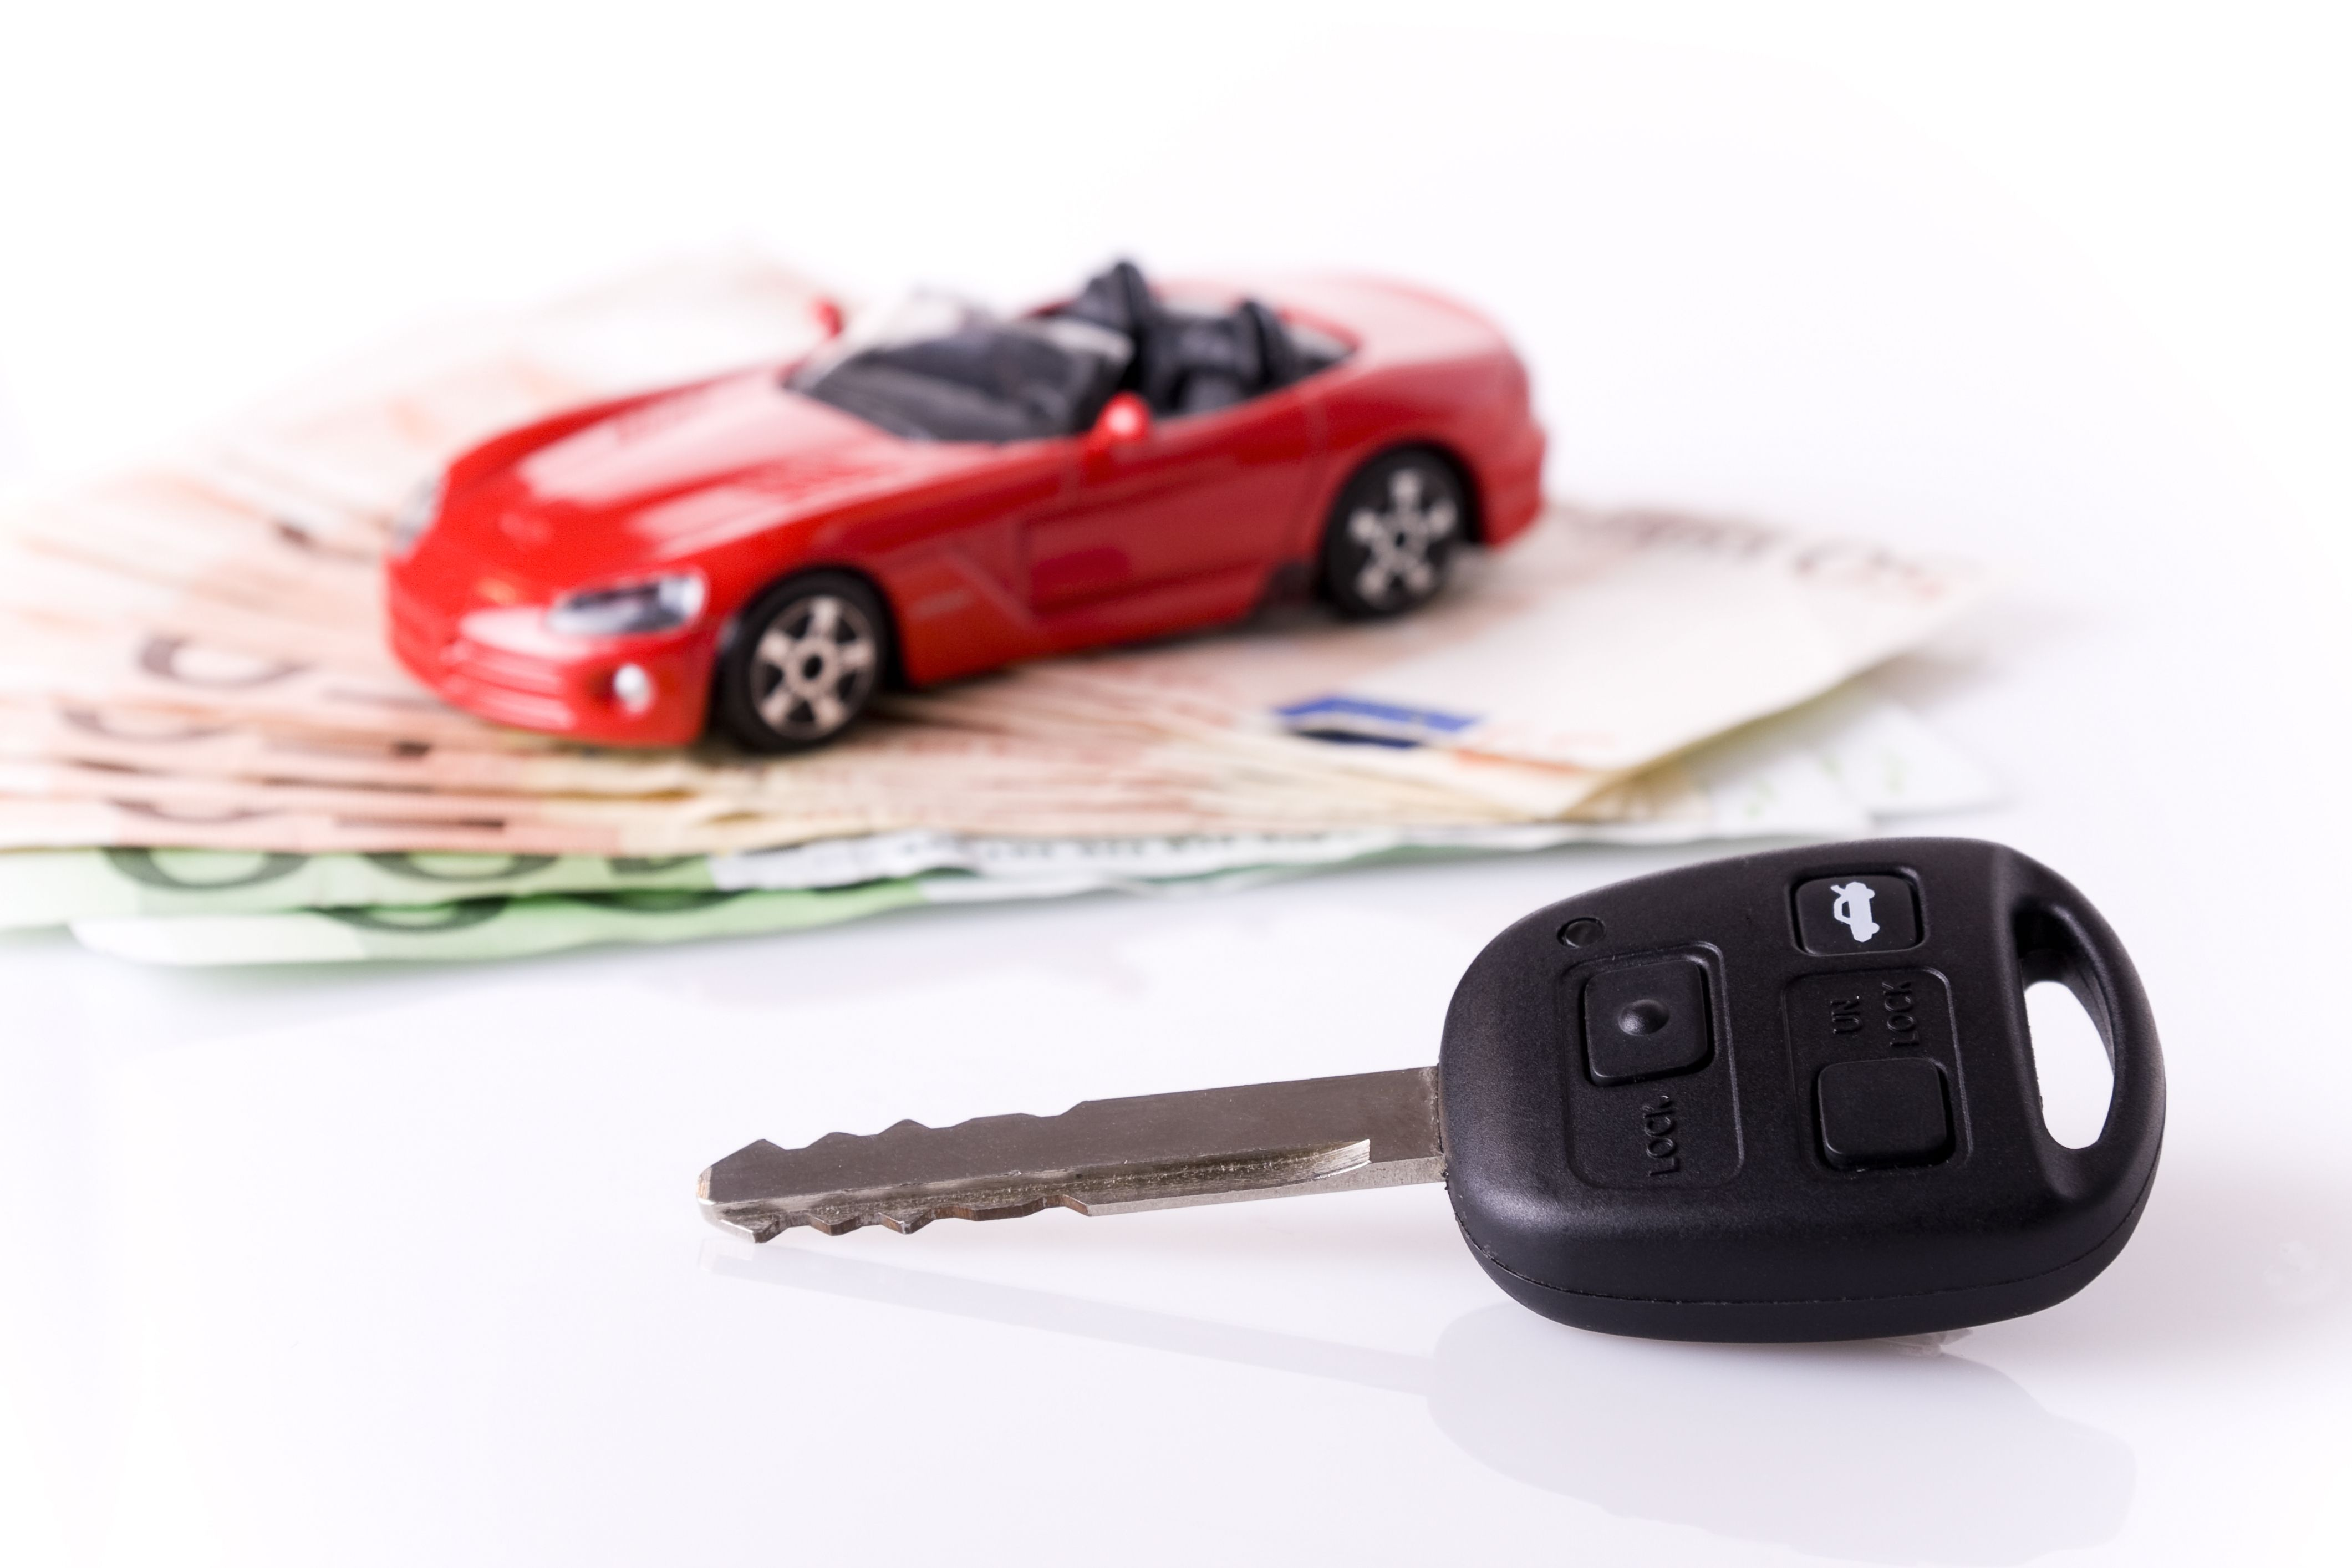 The 7 Things You Need to Know Before Purchasing Insurance After a DUI